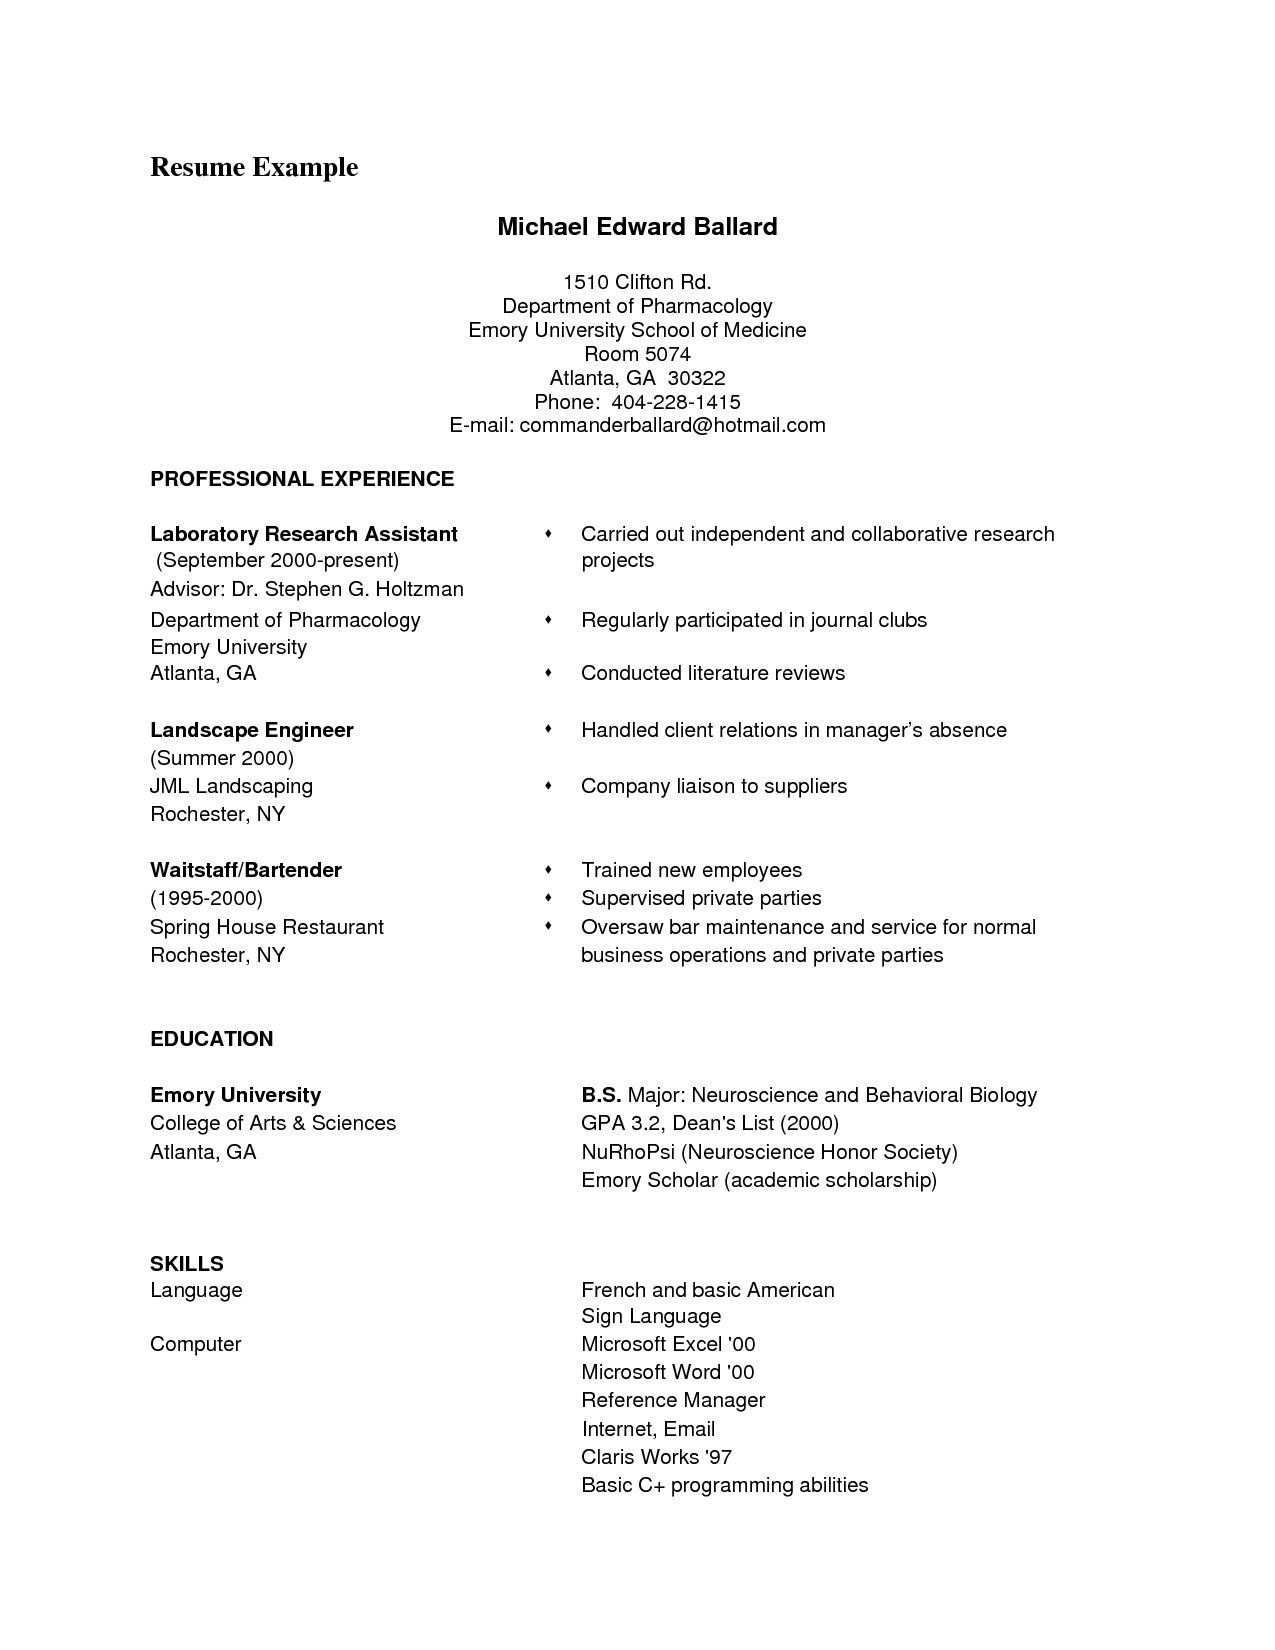 Resume Template for Scholarship - Classic Resume Templates ¢Ë†Å¡ Powerpoint Templates for Biology New